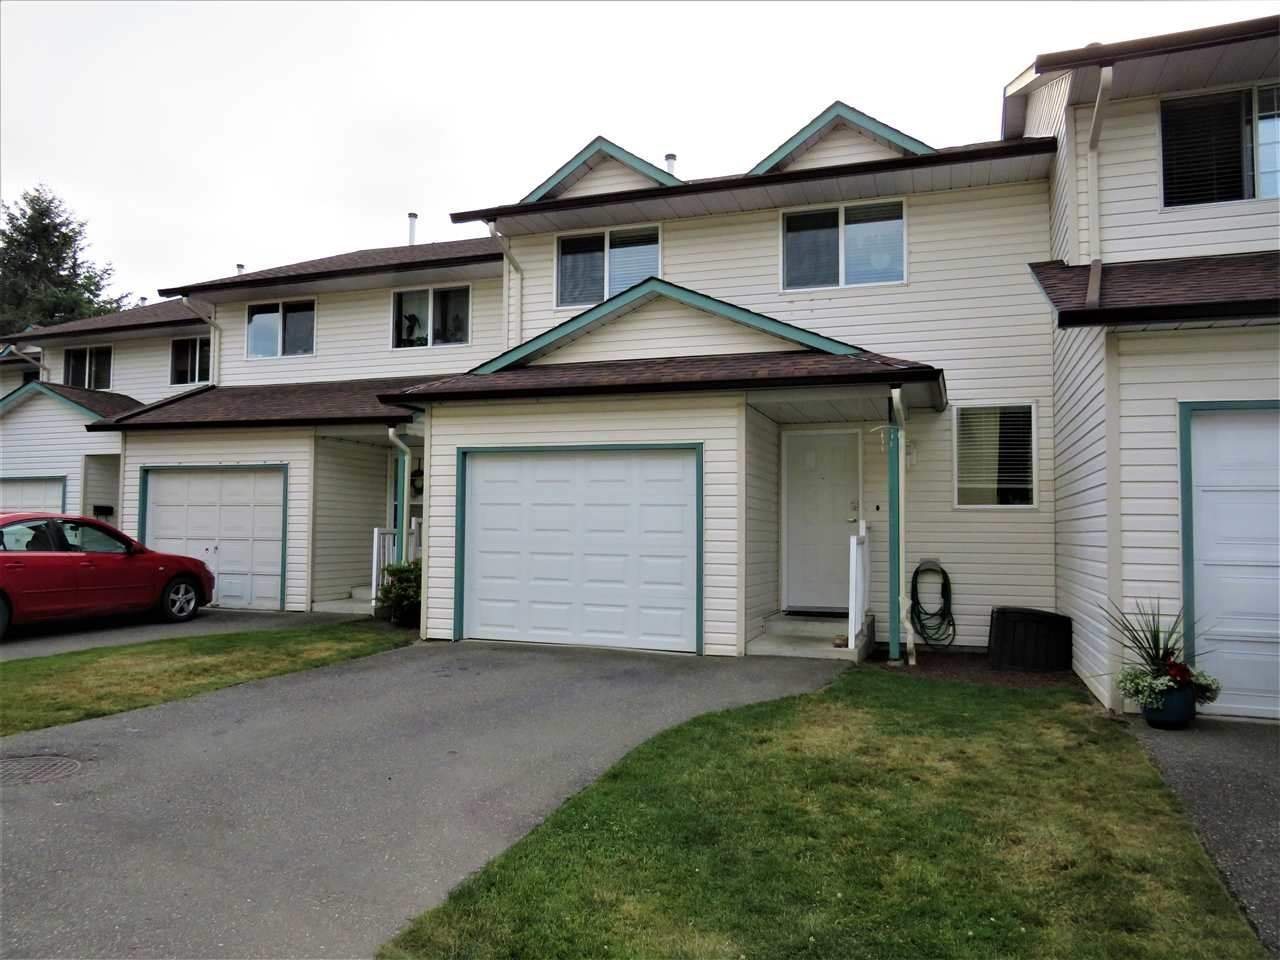 """Main Photo: 6 45640 STOREY Avenue in Sardis: Sardis West Vedder Rd Townhouse for sale in """"WHISPERING PINES"""" : MLS®# R2418878"""